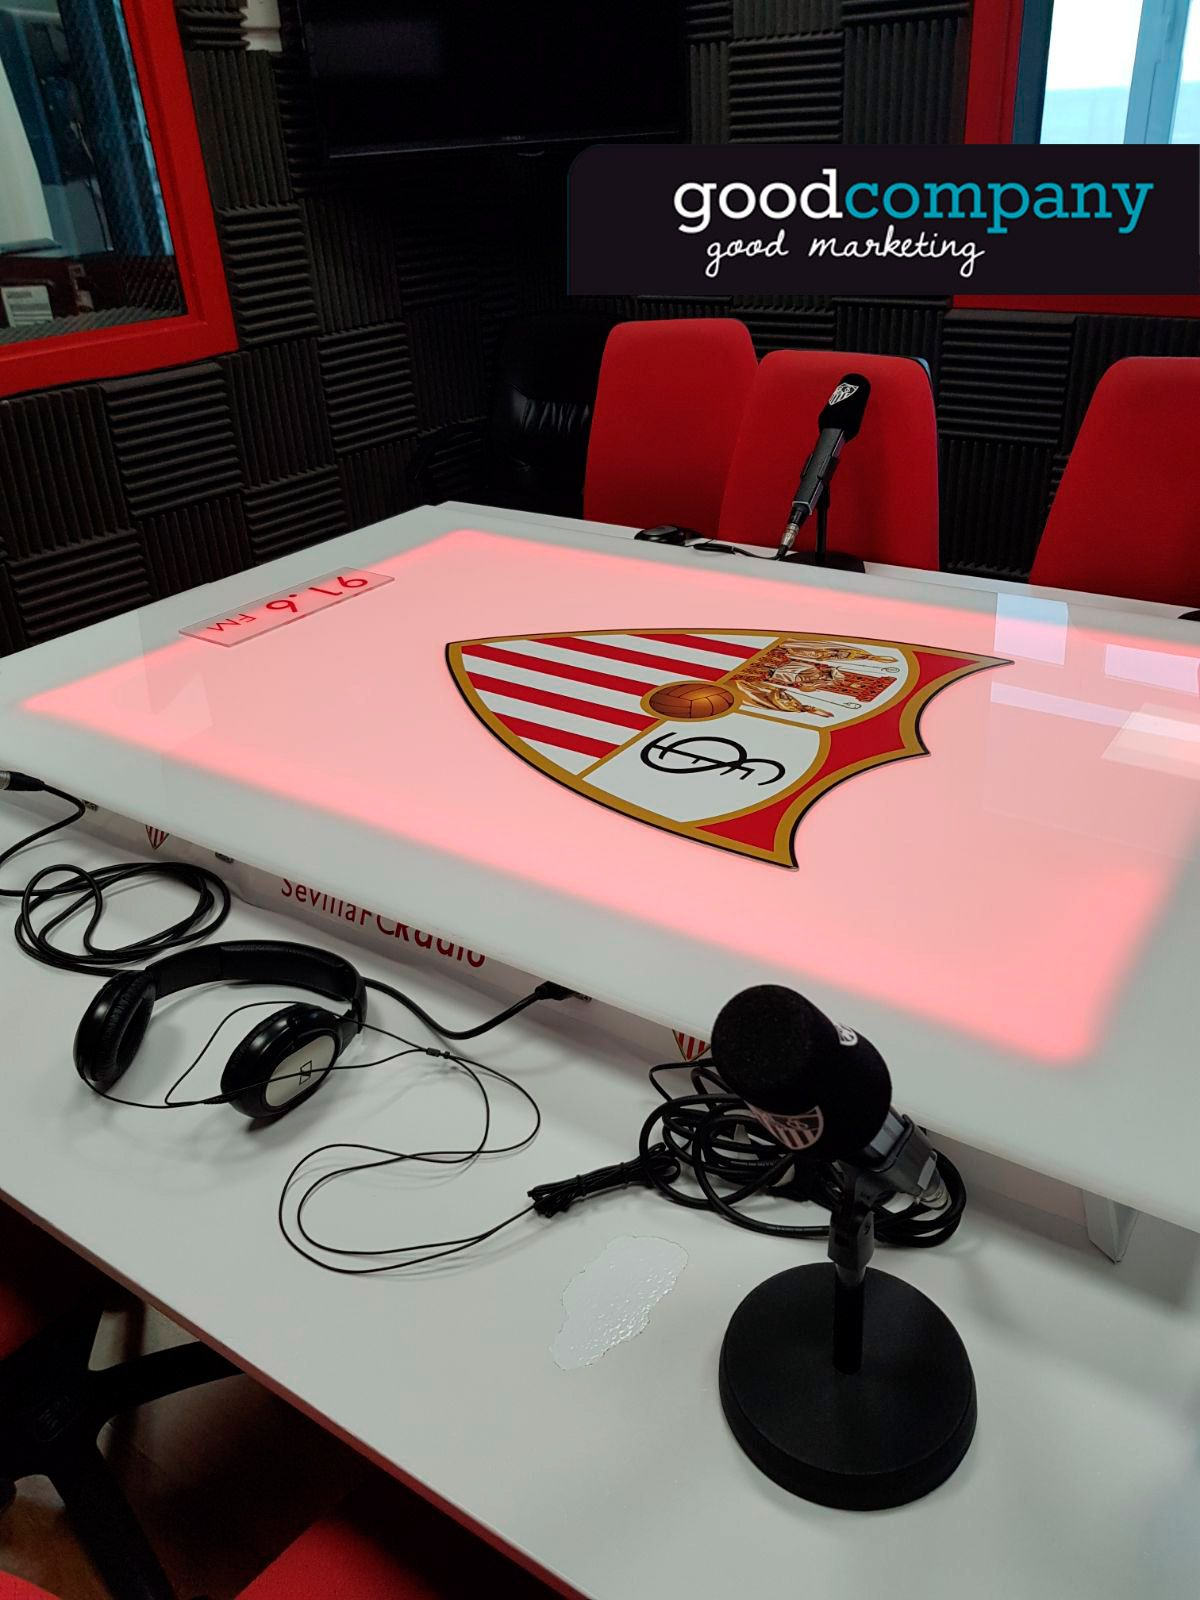 GoodCompany habla de marketing en la radio del Sevilla F.C.